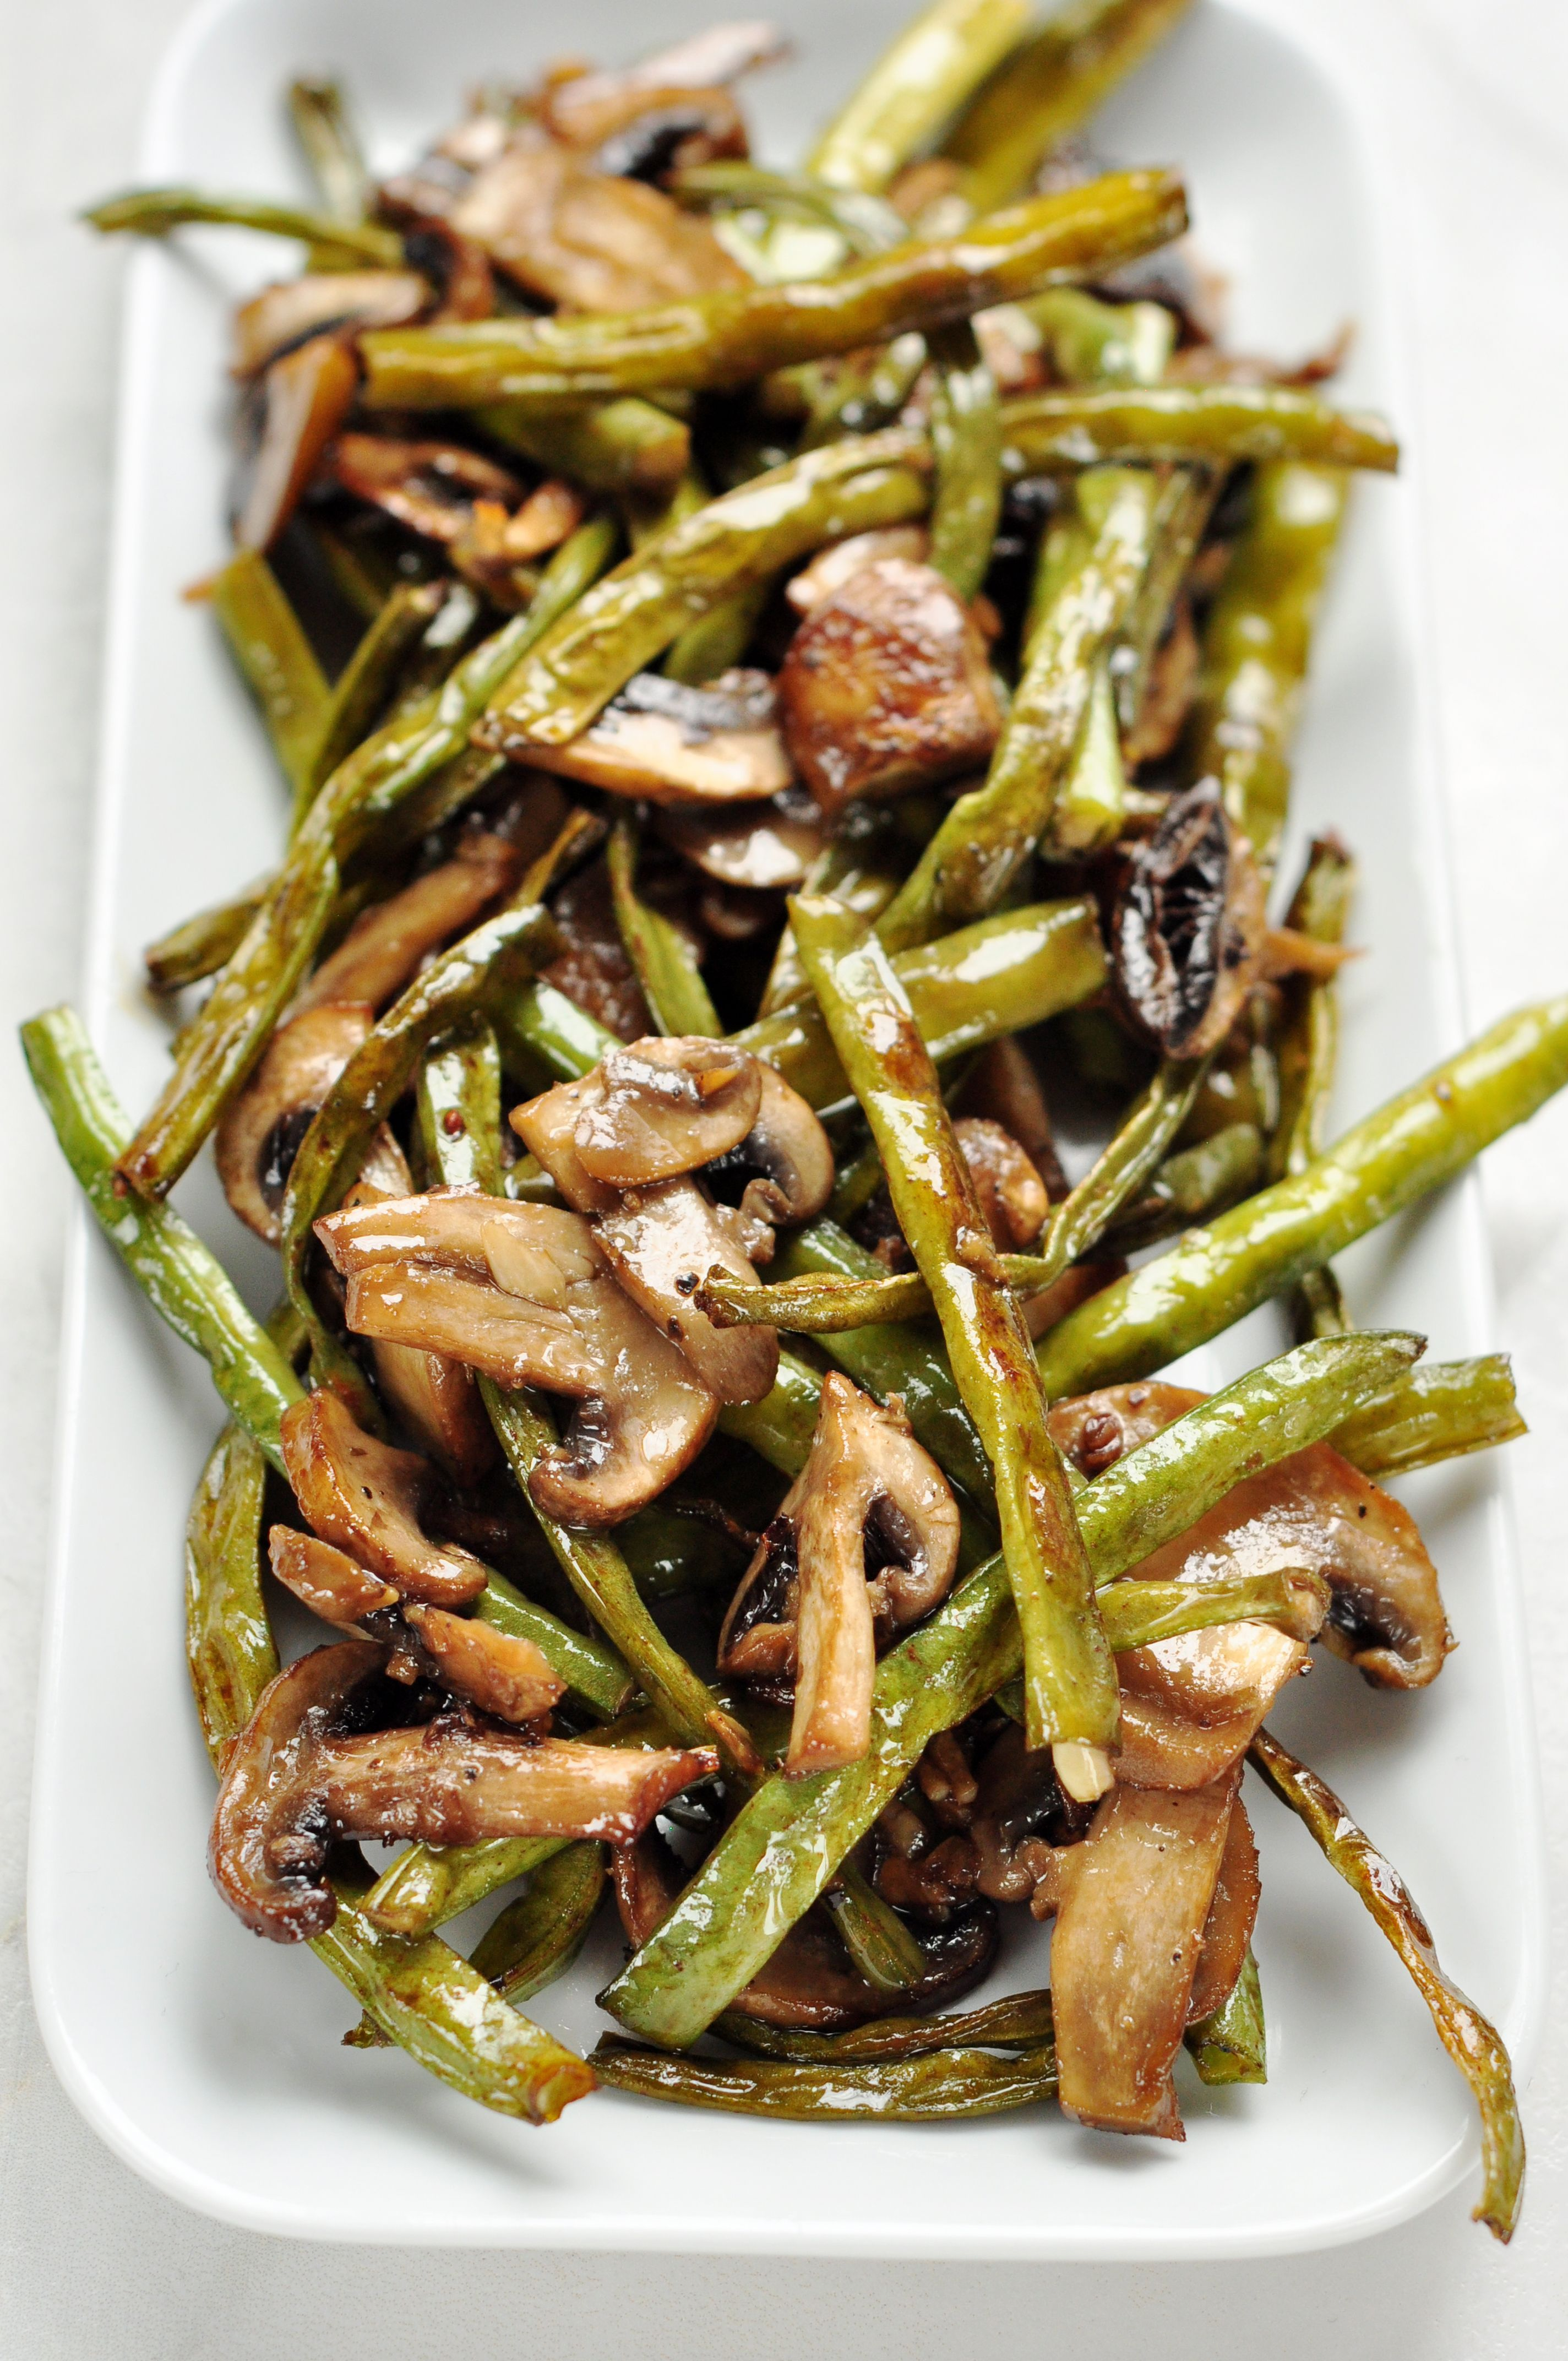 Roasted Green Beans and Mushrooms images